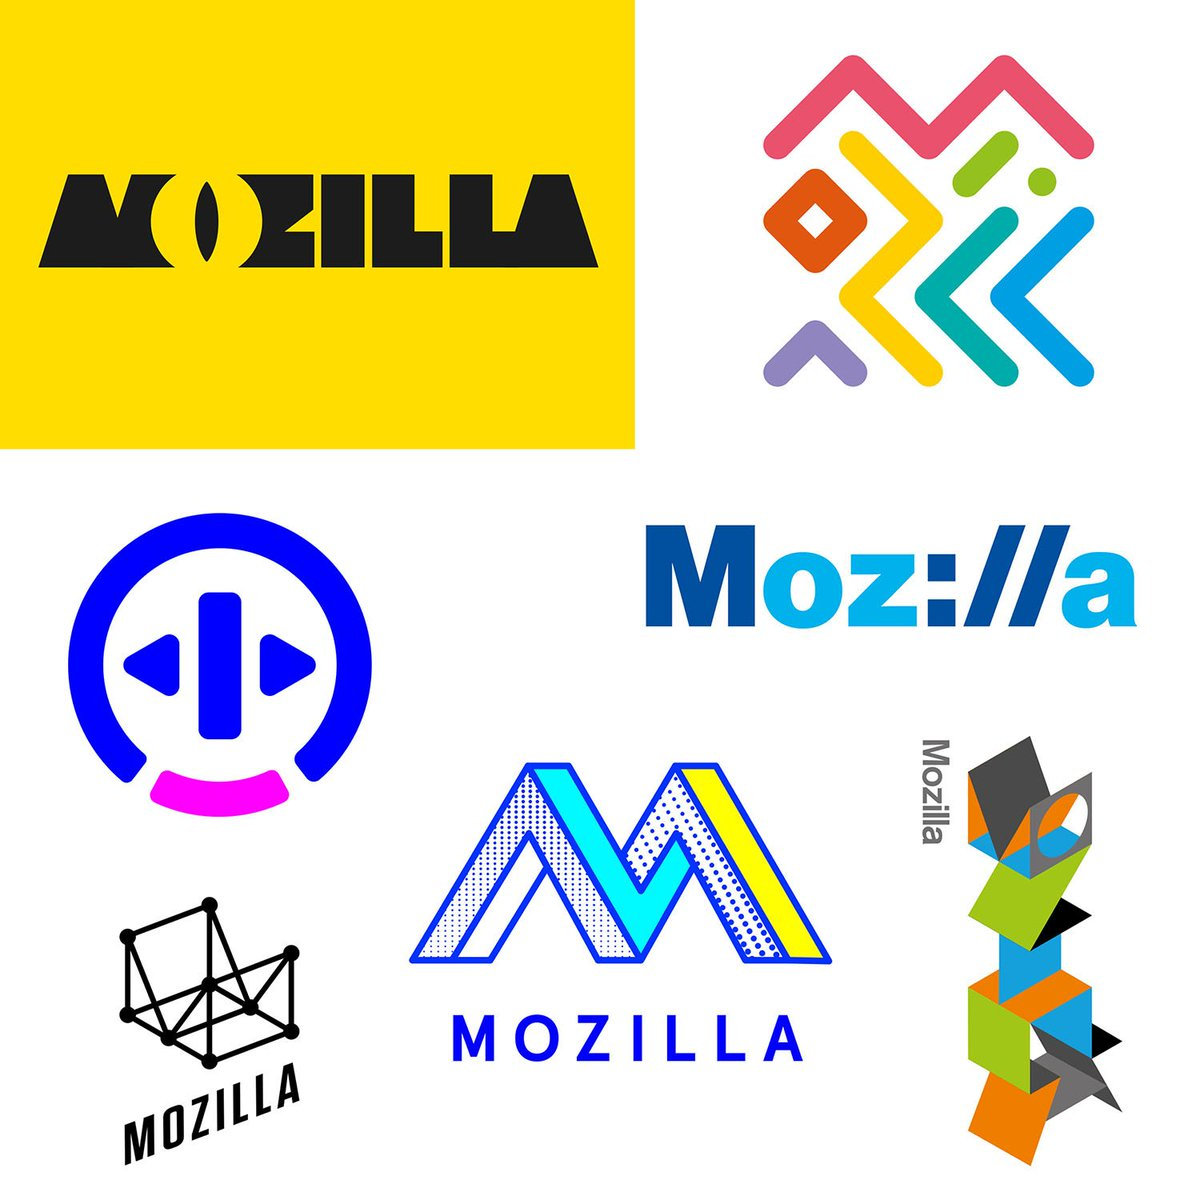 @johnsonbanks first 7 design routes for @mozilla for all to see... https://t.co/yqZyqcQVnh https://t.co/Eu2xaIMdnw